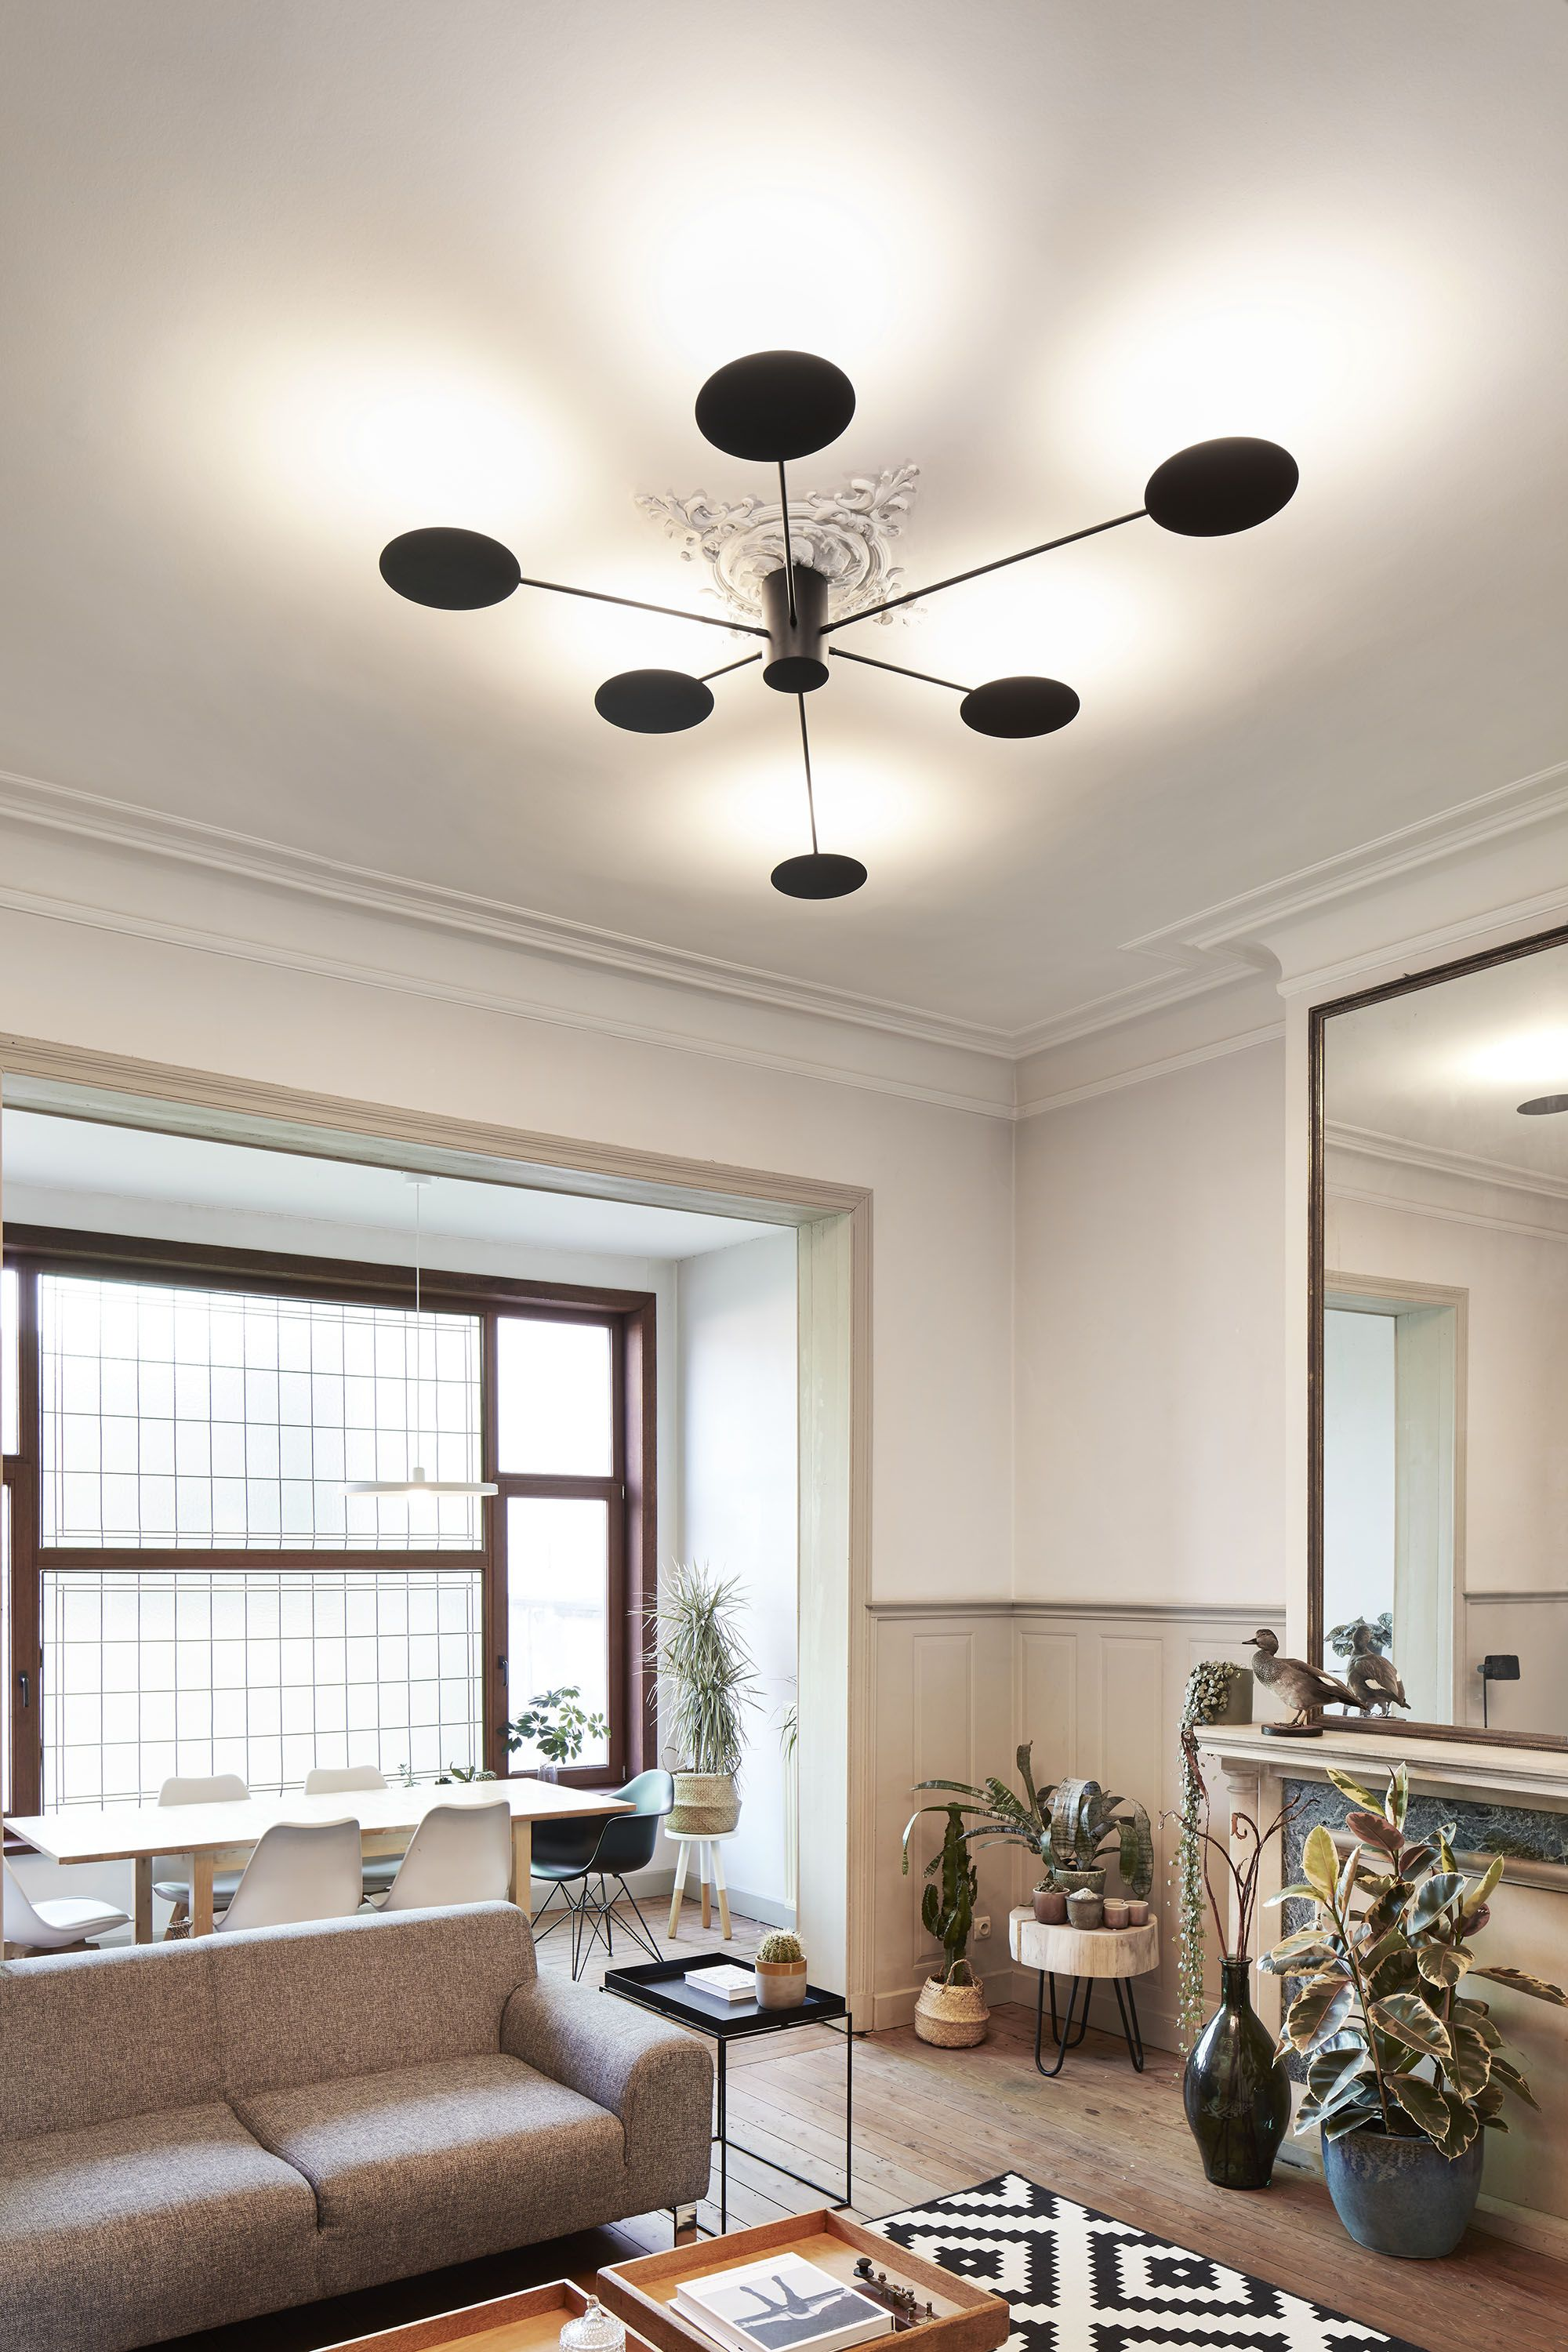 Round Control Is Designed As A Ceiling And Wall Surface